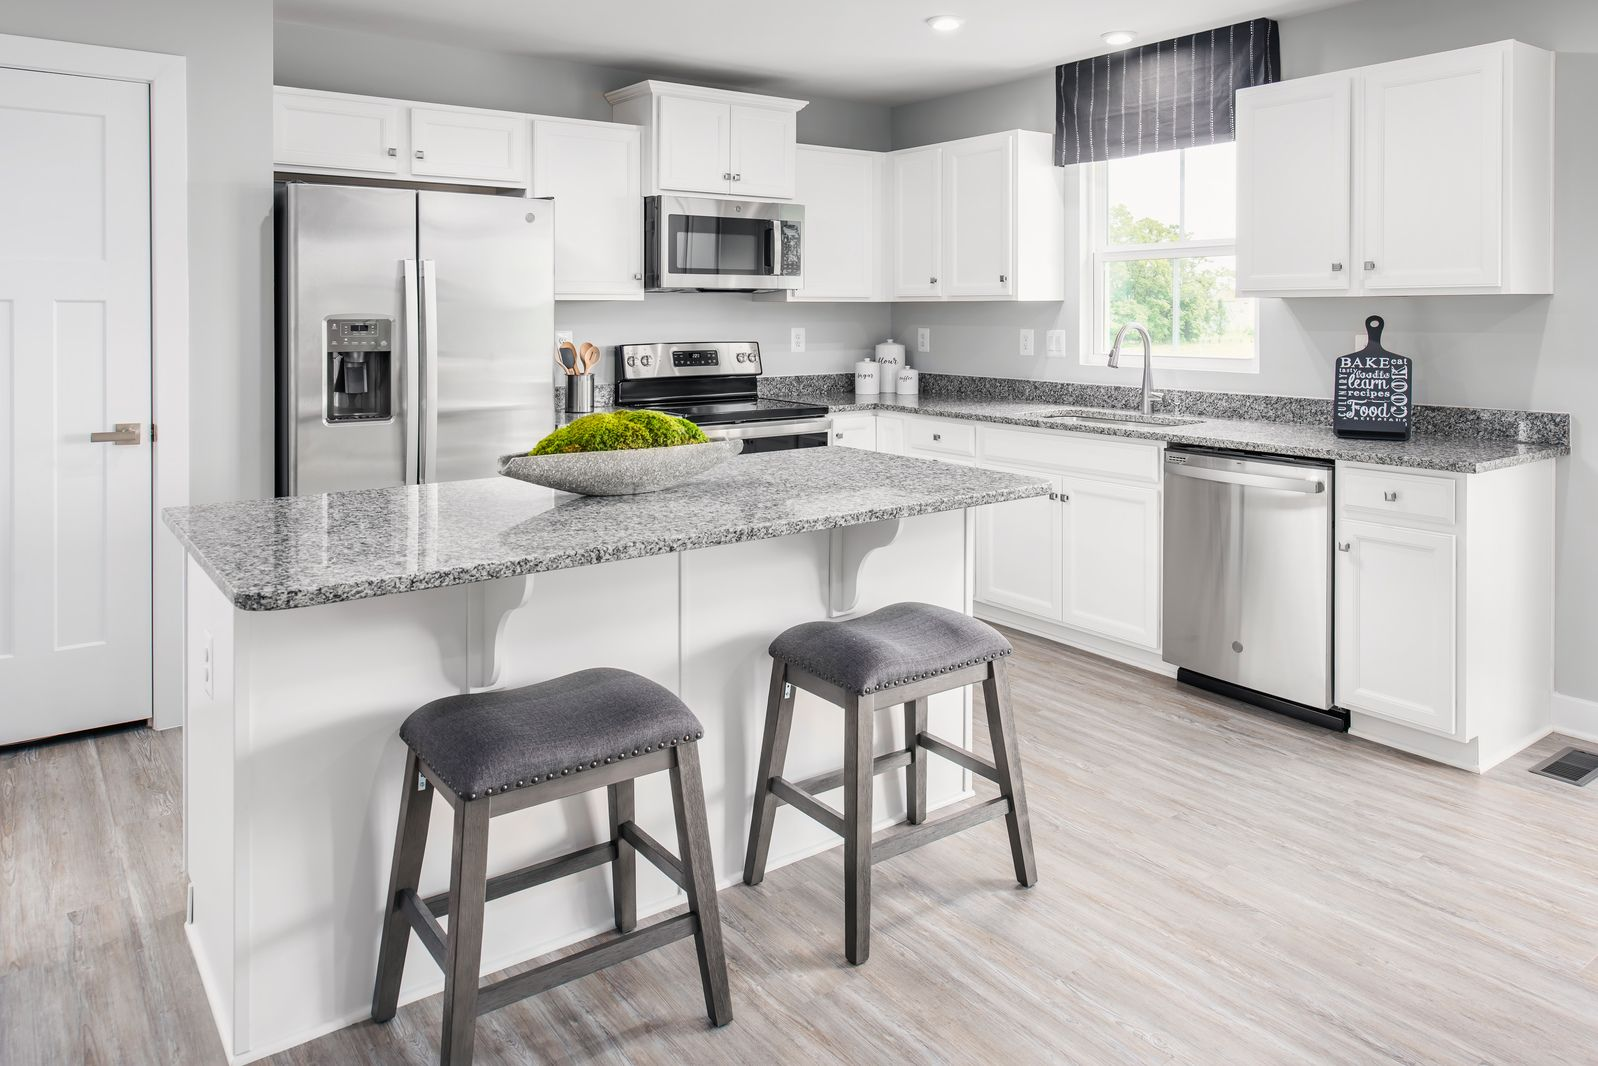 Kitchen featured in the Grand Bahama By Ryan Homes in Sussex County, NJ